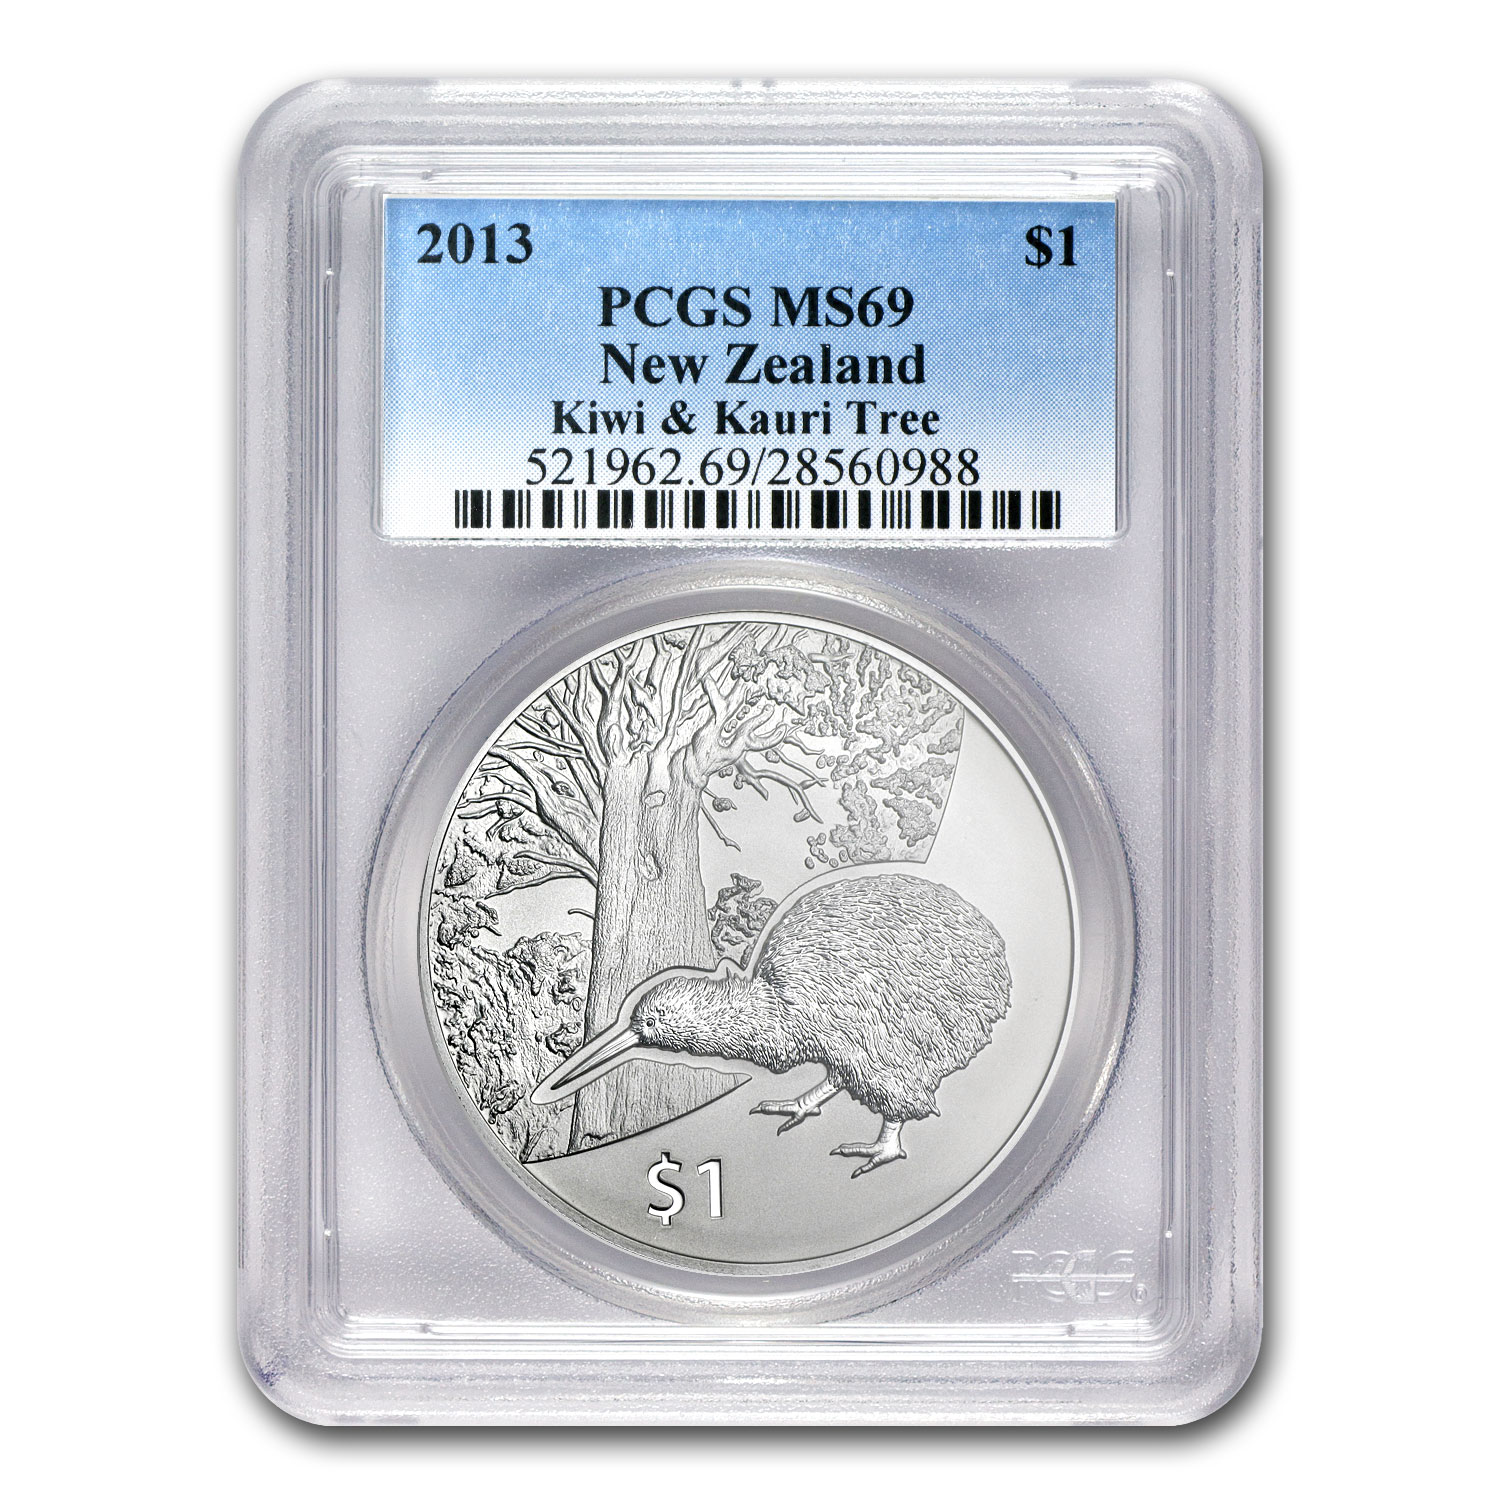 2013 New Zealand 1 oz Silver Treasures $1 Kiwi MS-69 PCGS